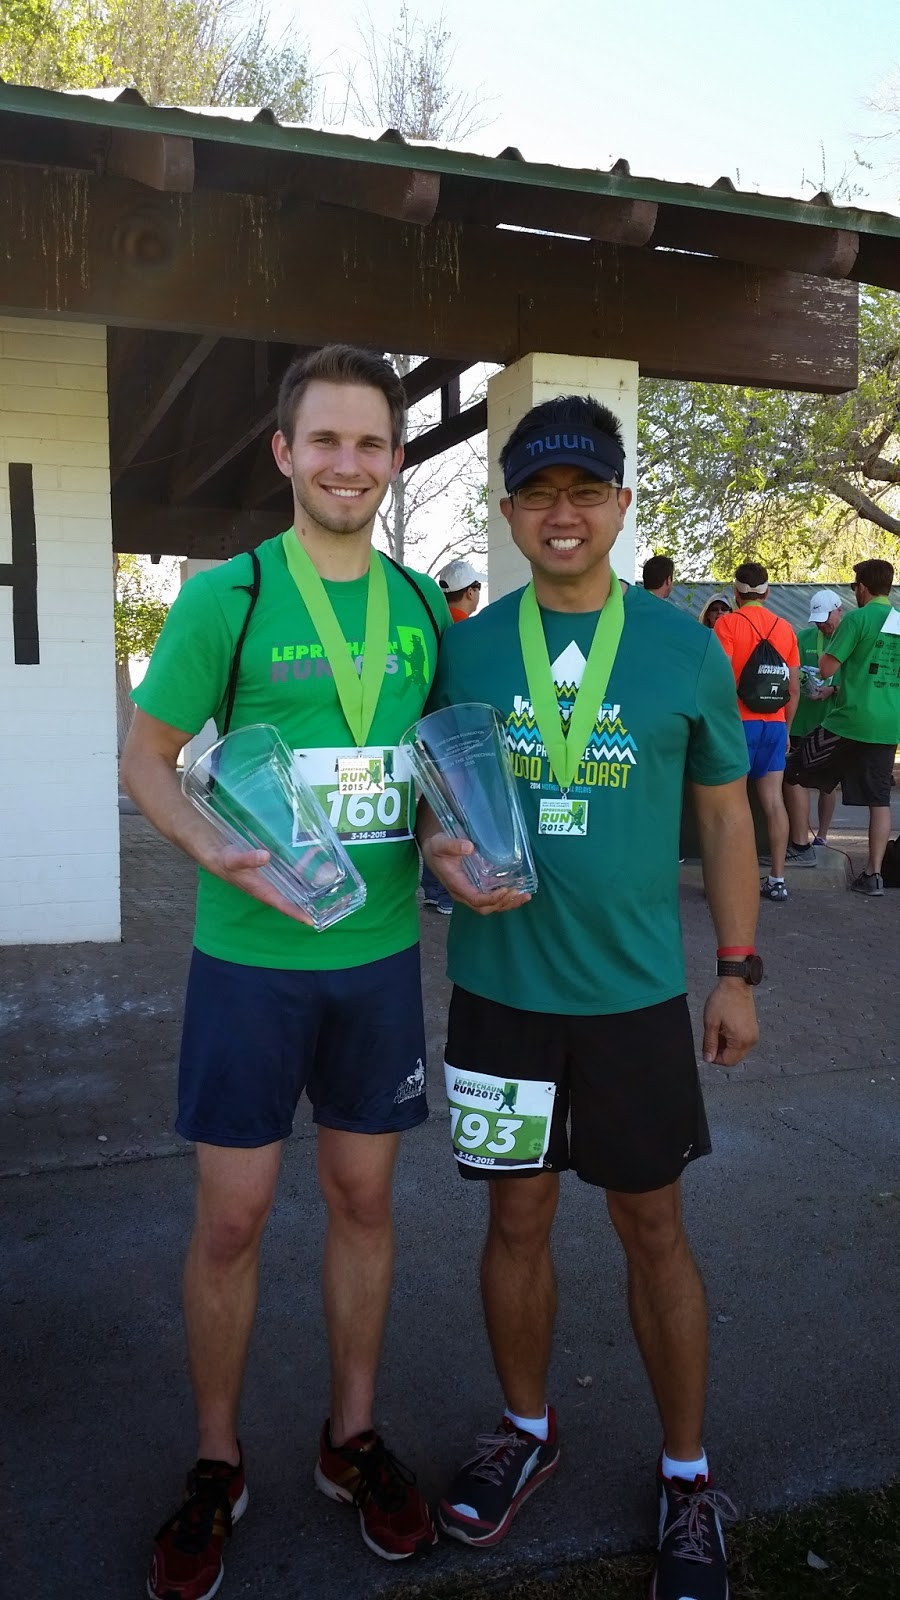 Catch the Leprechaun 5k Division Winners